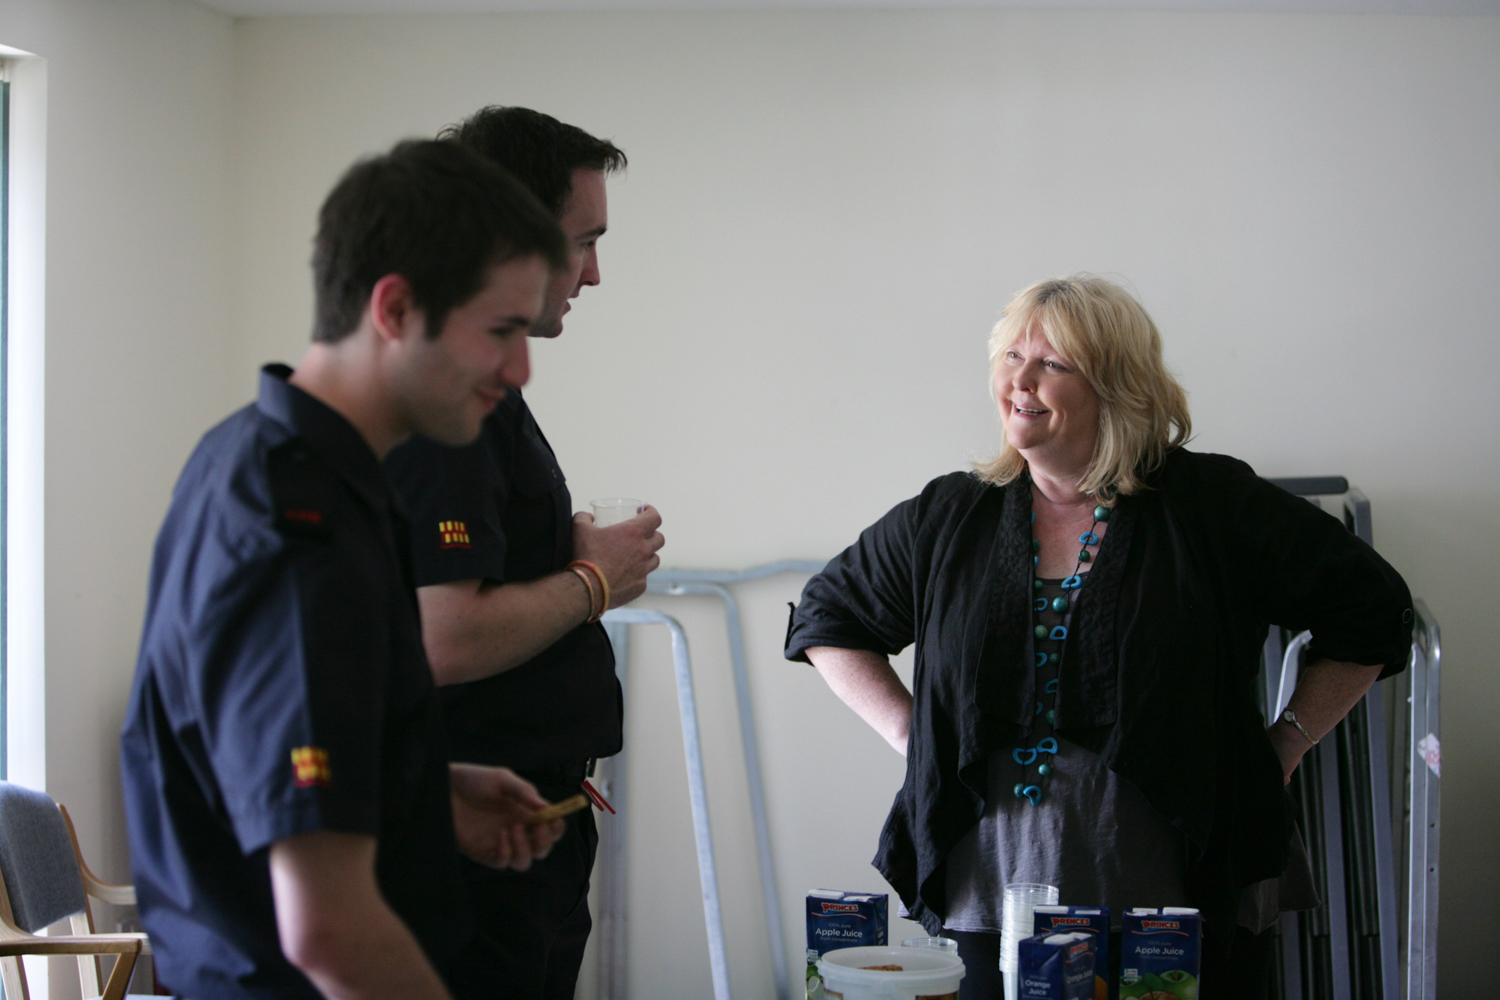 PICTORIAL_BERWICK_bookstart-heatherslaw-funded-day-out-educational-extended-services-lorna-chappell-organised-fire-police-9793.jpg